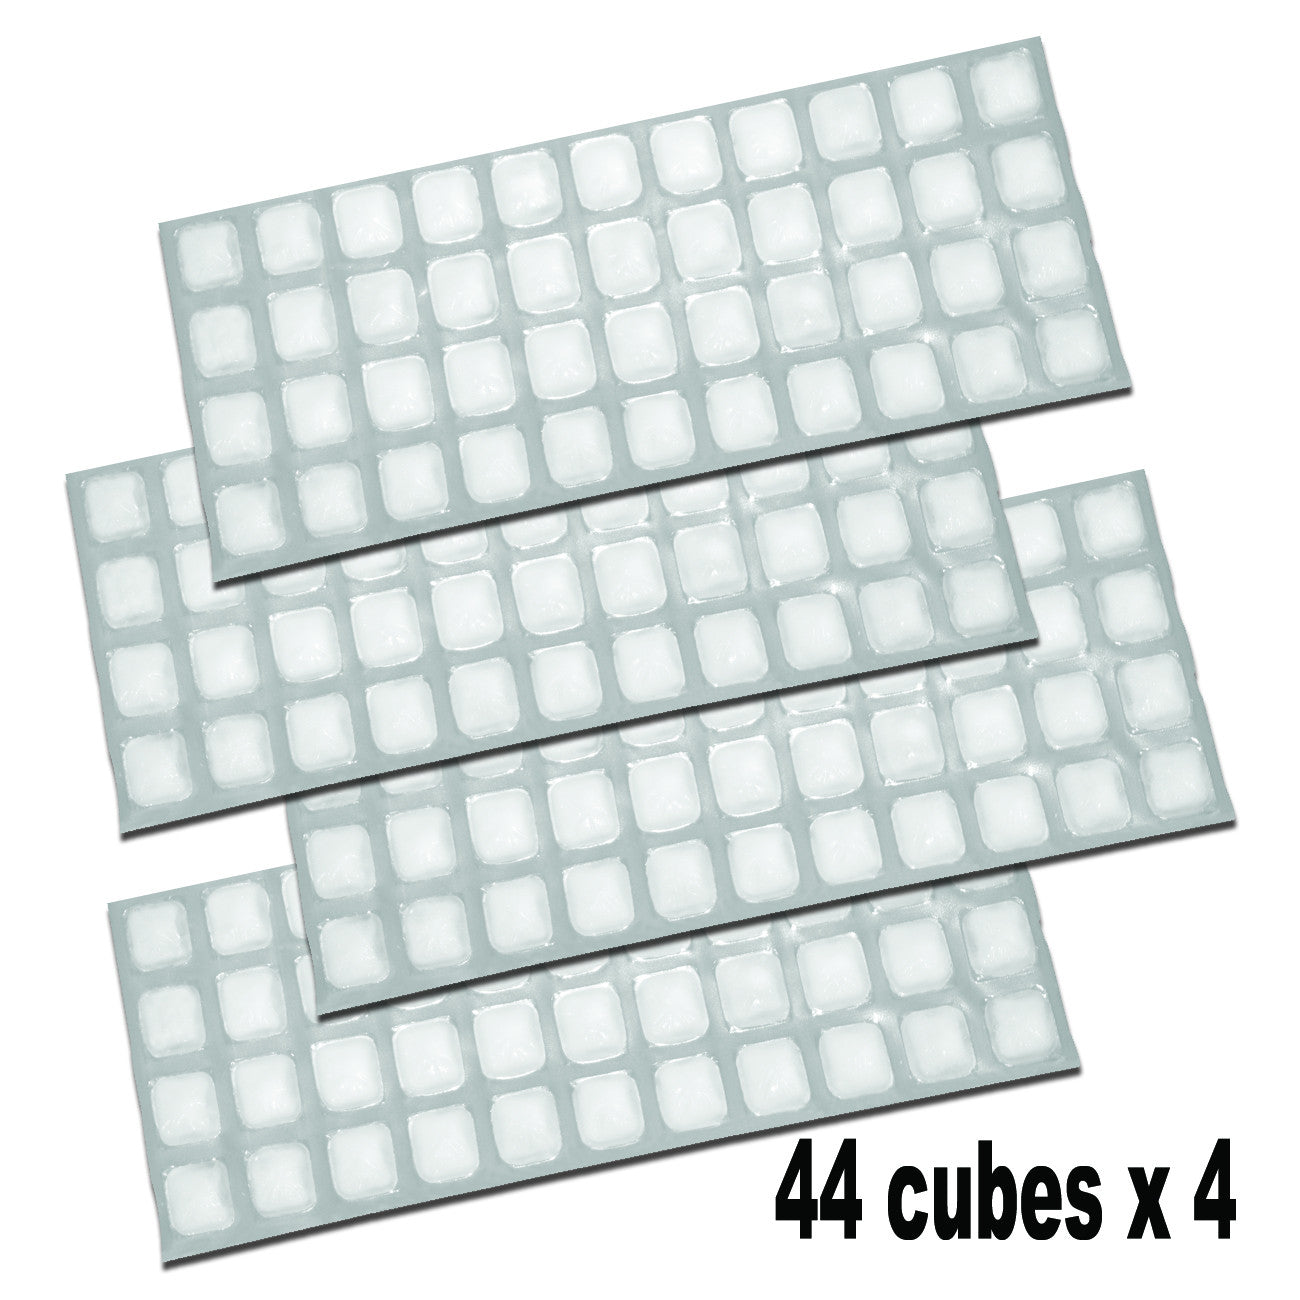 FlexiFreeze Ice Sheet - 4 Pack (44 cubes)